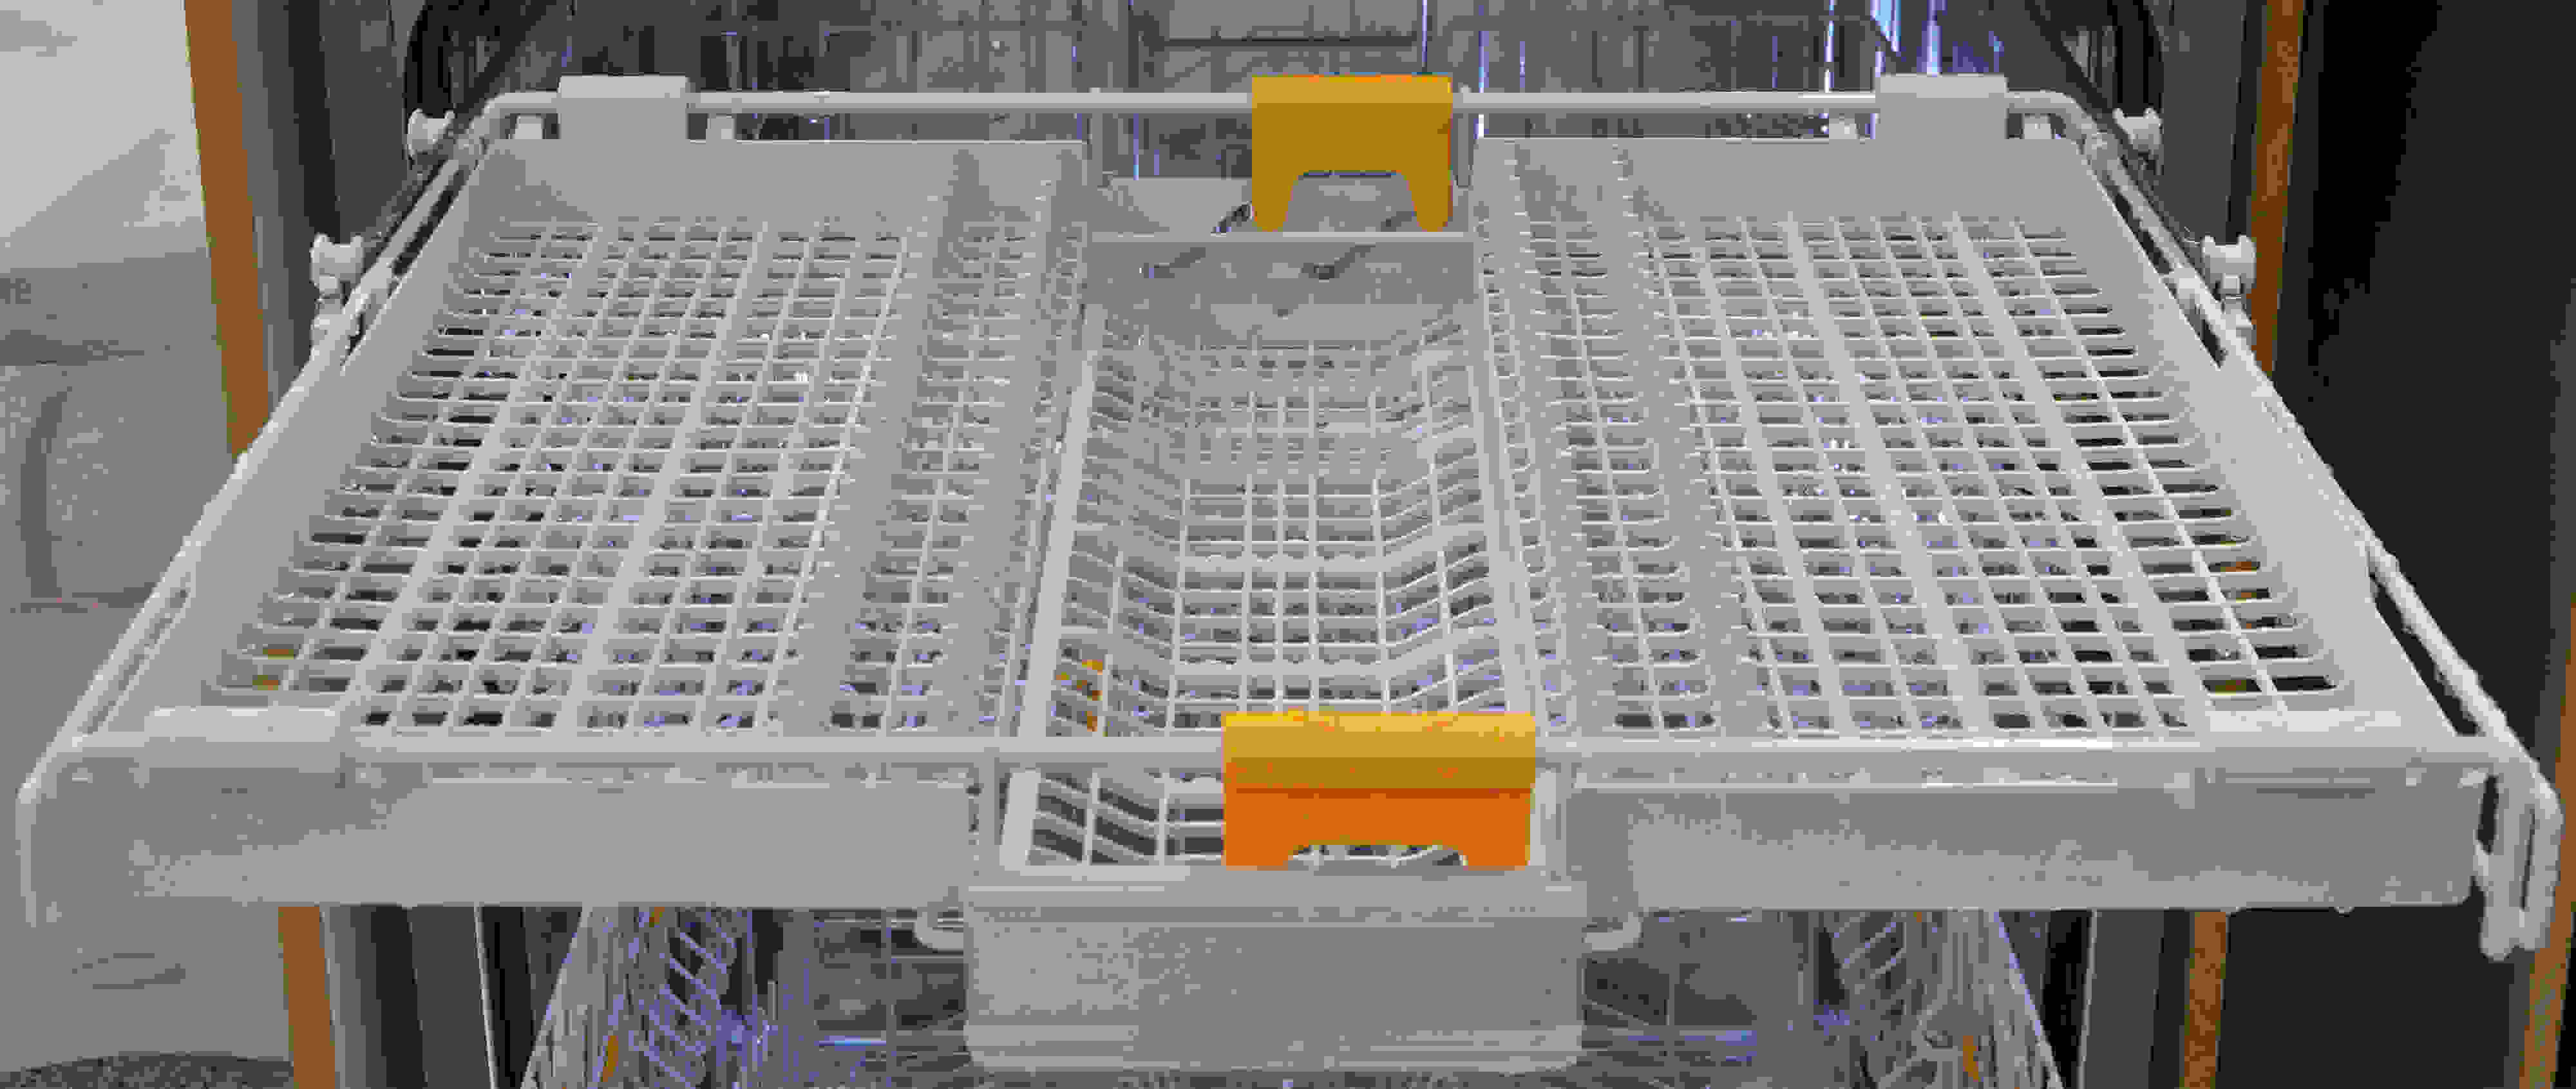 Showing the yellow sliders that adjust the third rack's middle section